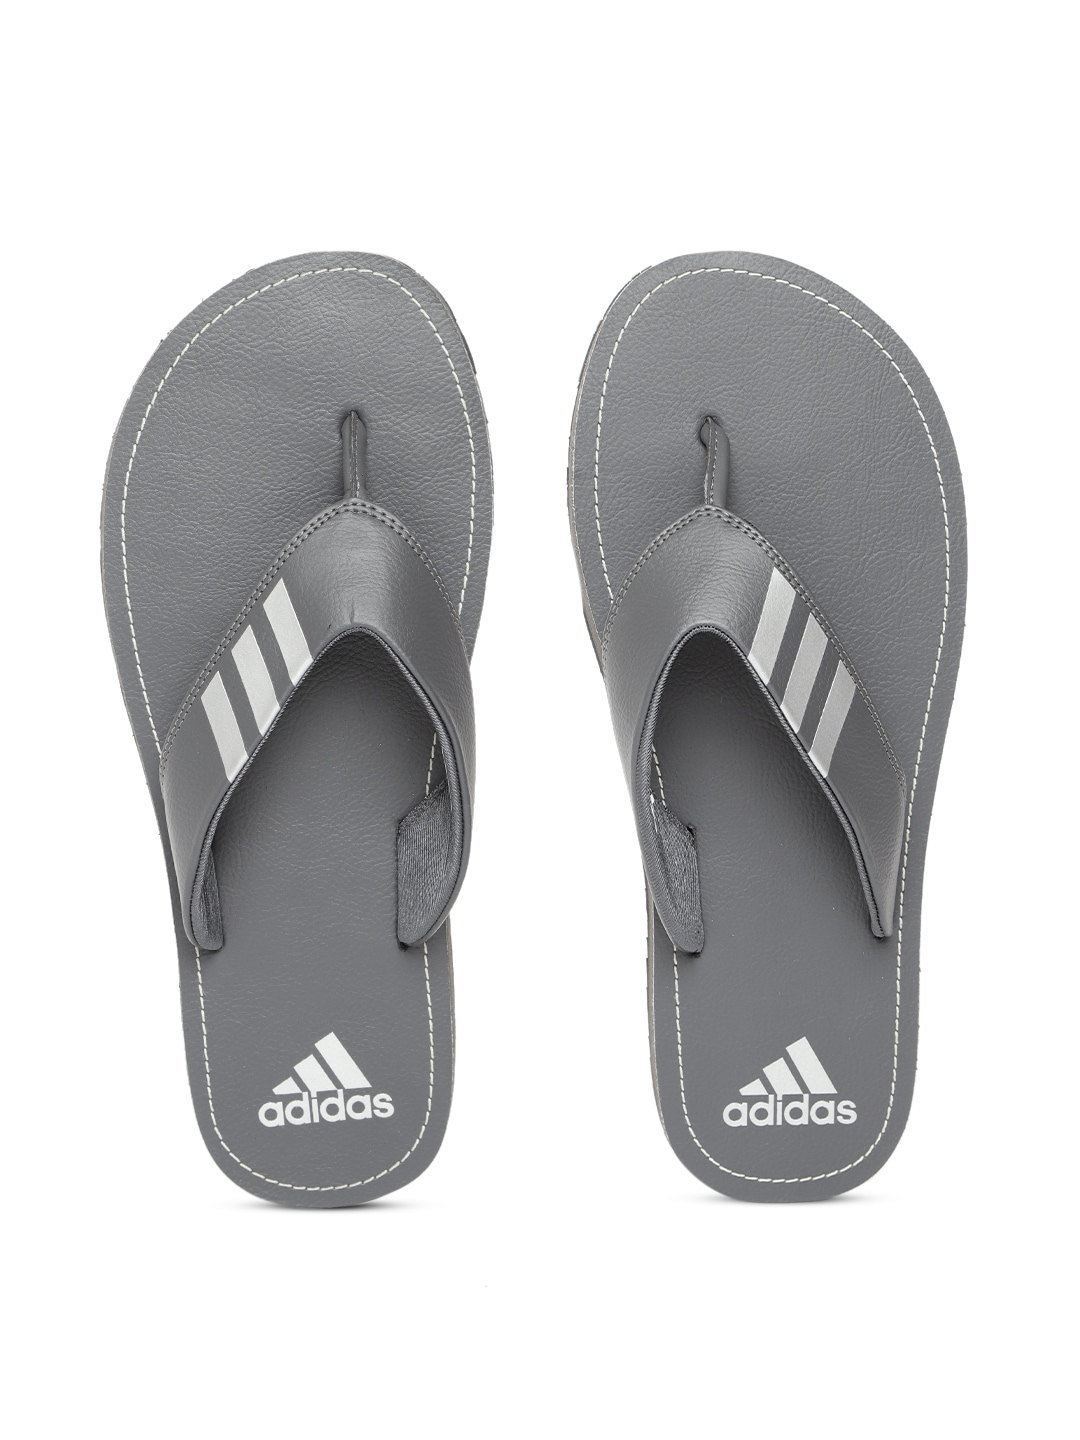 f0ff5a32c Adidas Flip Flops For Men - Buy Adidas Flip Flops For Men online in India